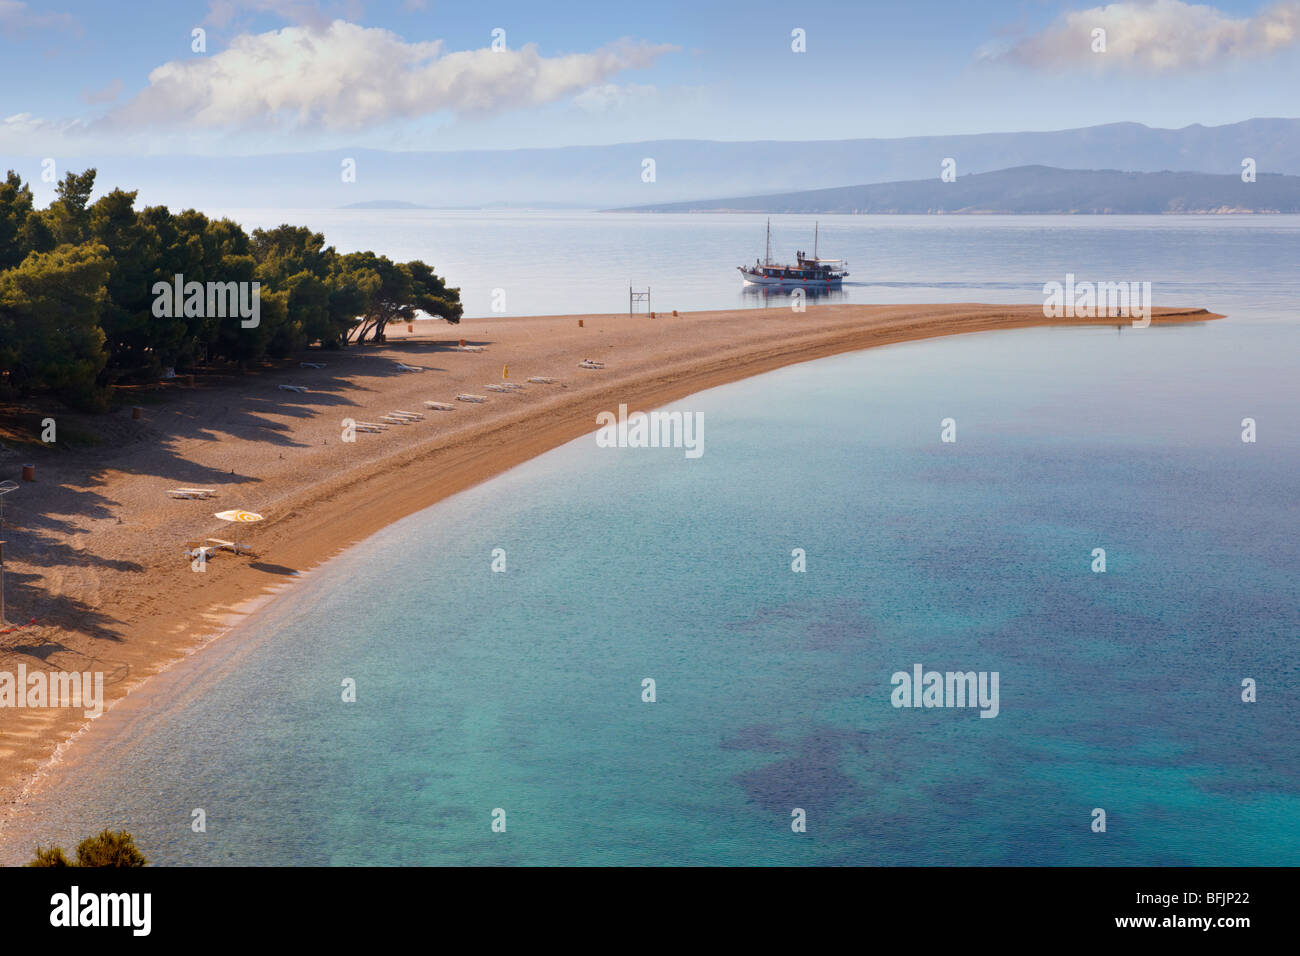 Zlati Rat ( Golden Cape beach ) Brač island, Croatia - Stock Image